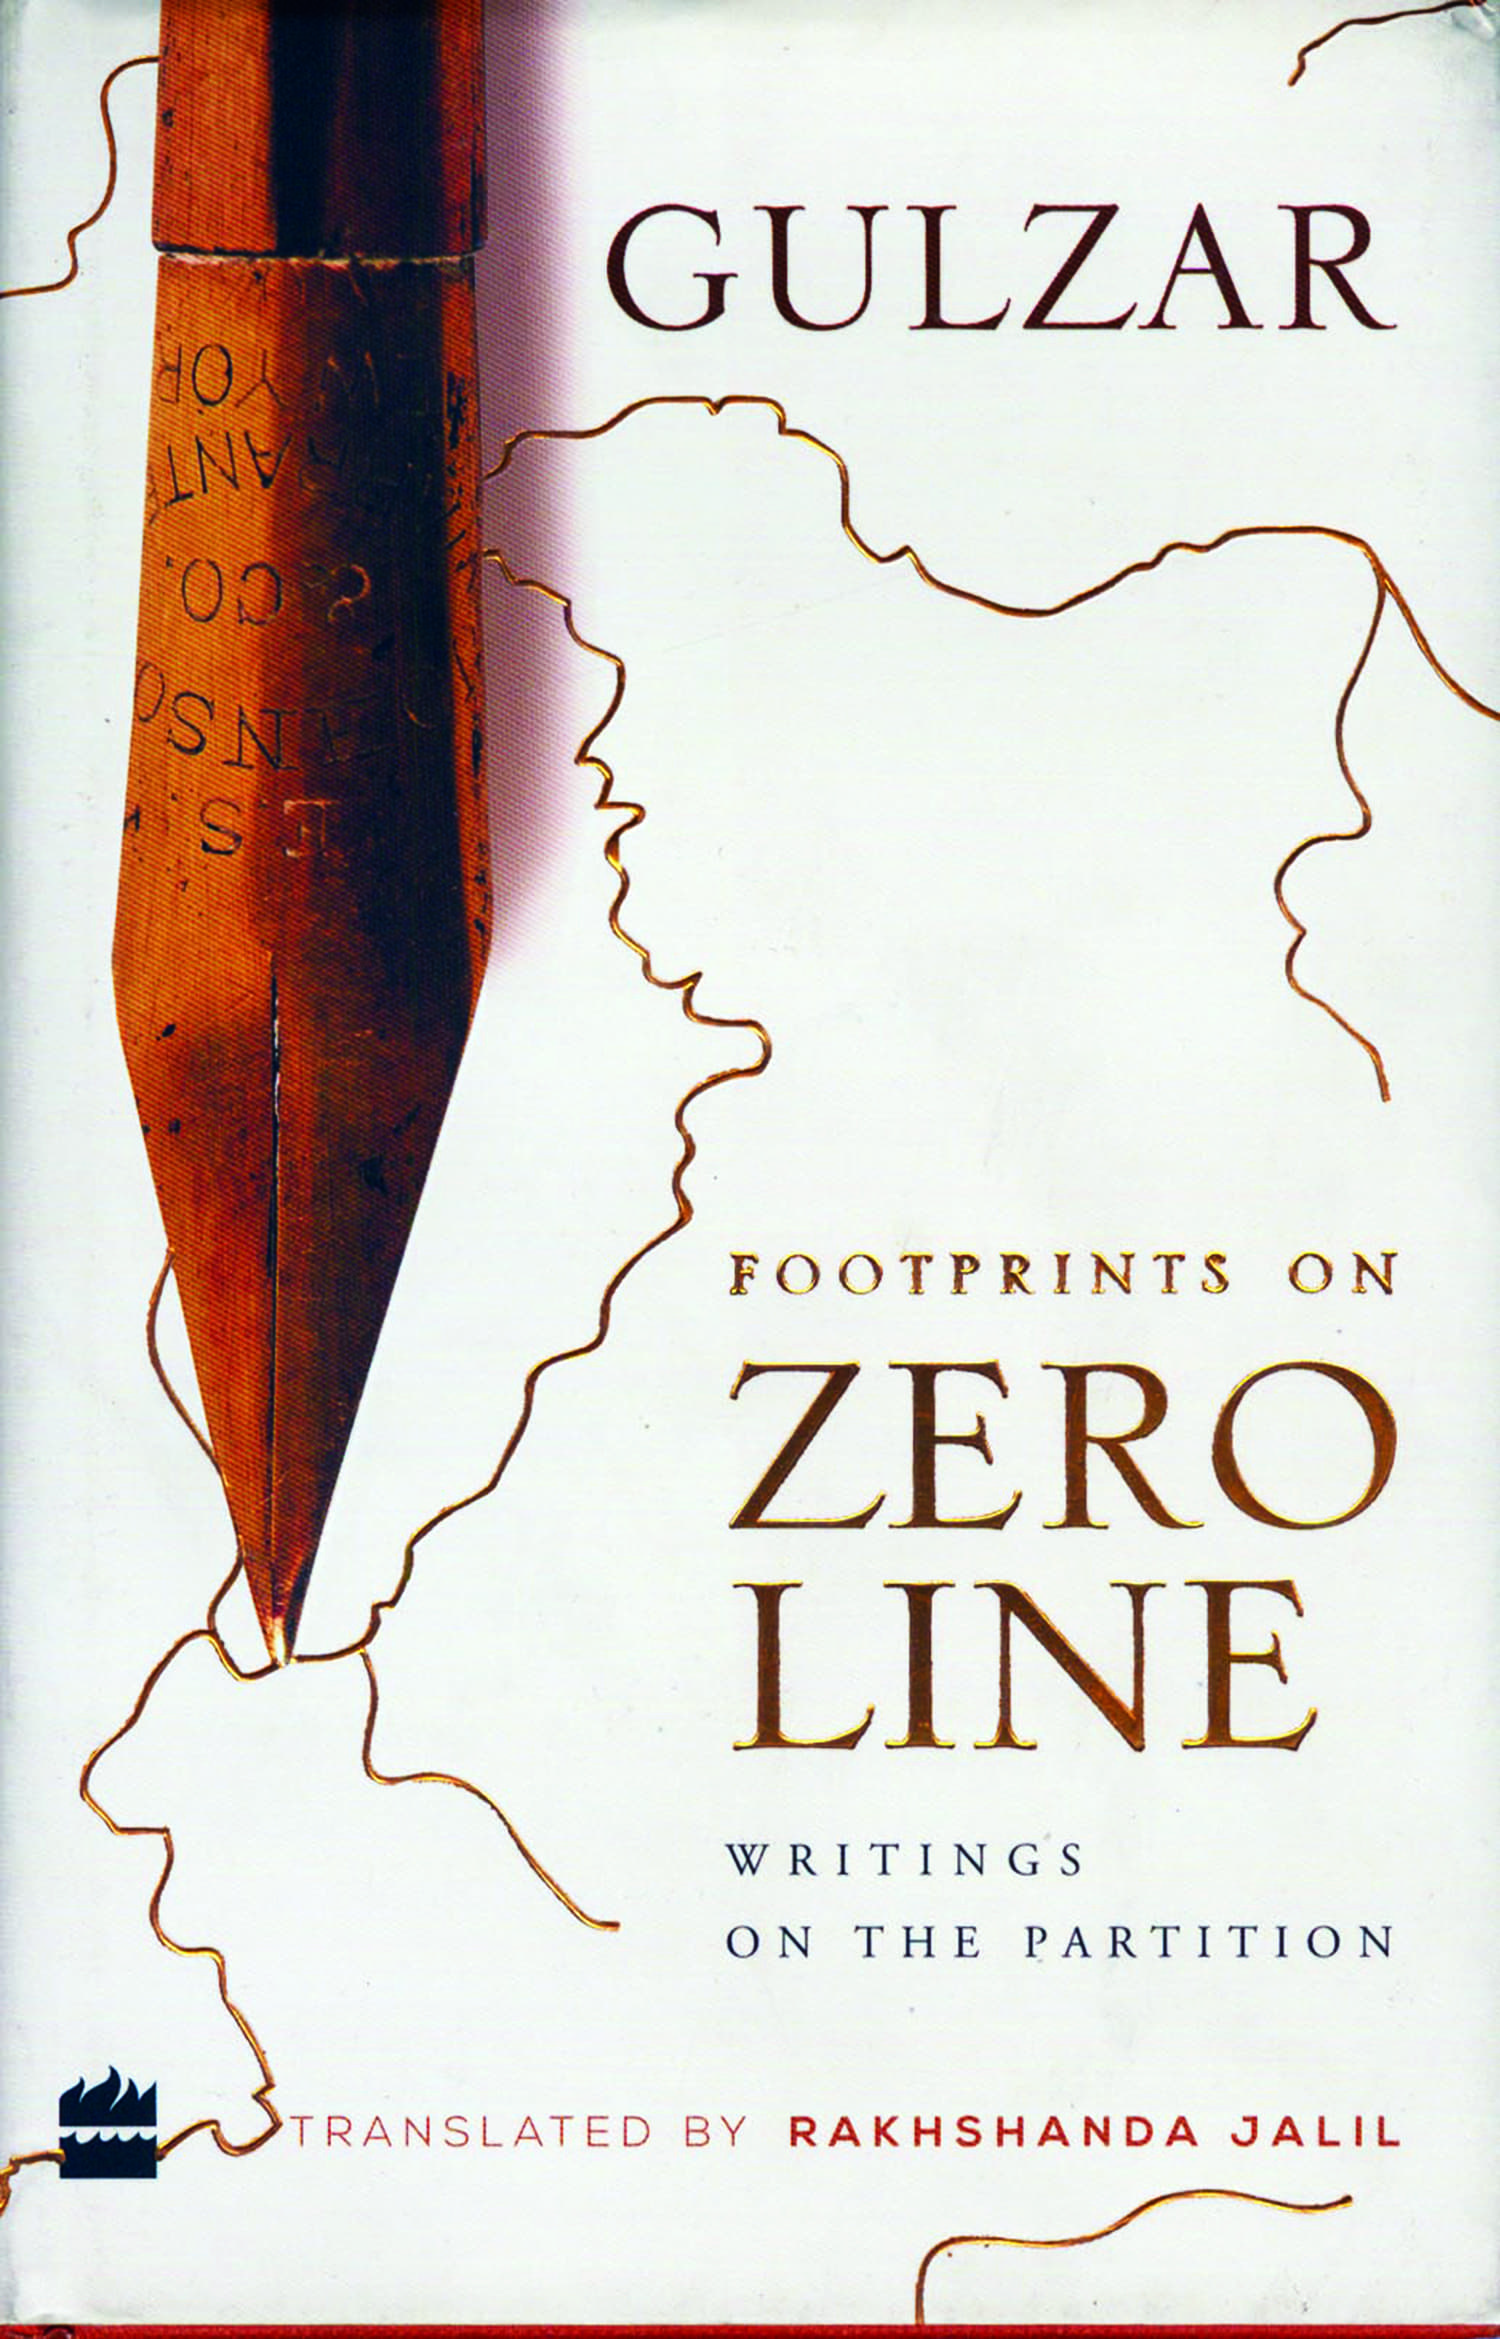 The cover of Footprints on Zero Line – Writings on the Partition, a collection of Gulzar's poems and short stories on the theme of Partition.